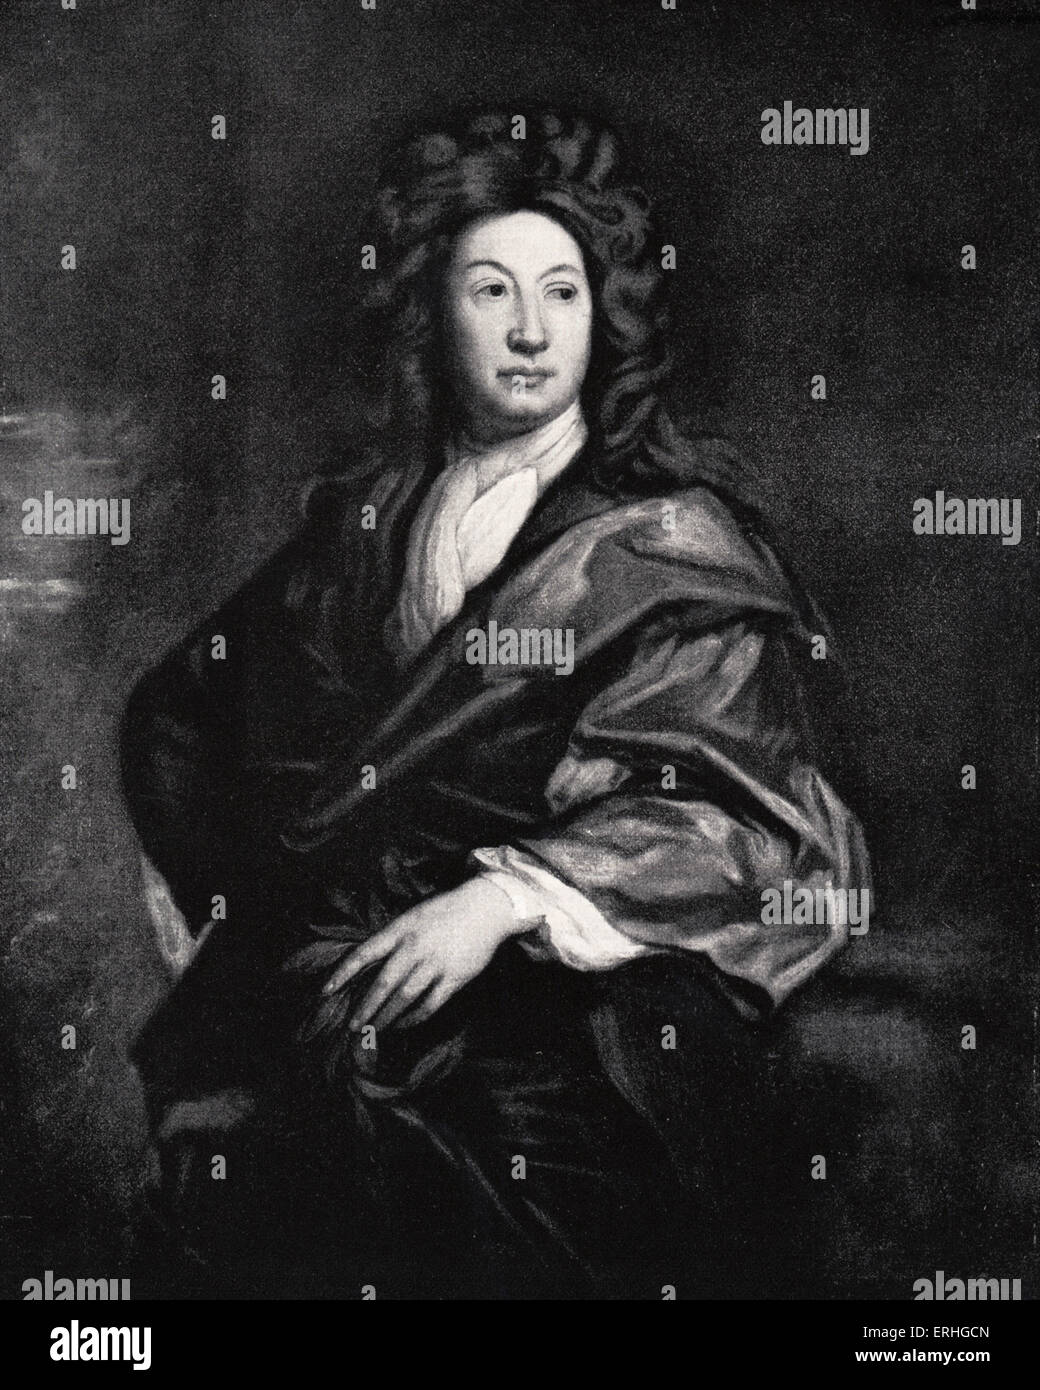 John Dryden, portrait.  English poet, literary critic, and playwright. 19 August 1631 – 12 May 1700. Painting by - Stock Image